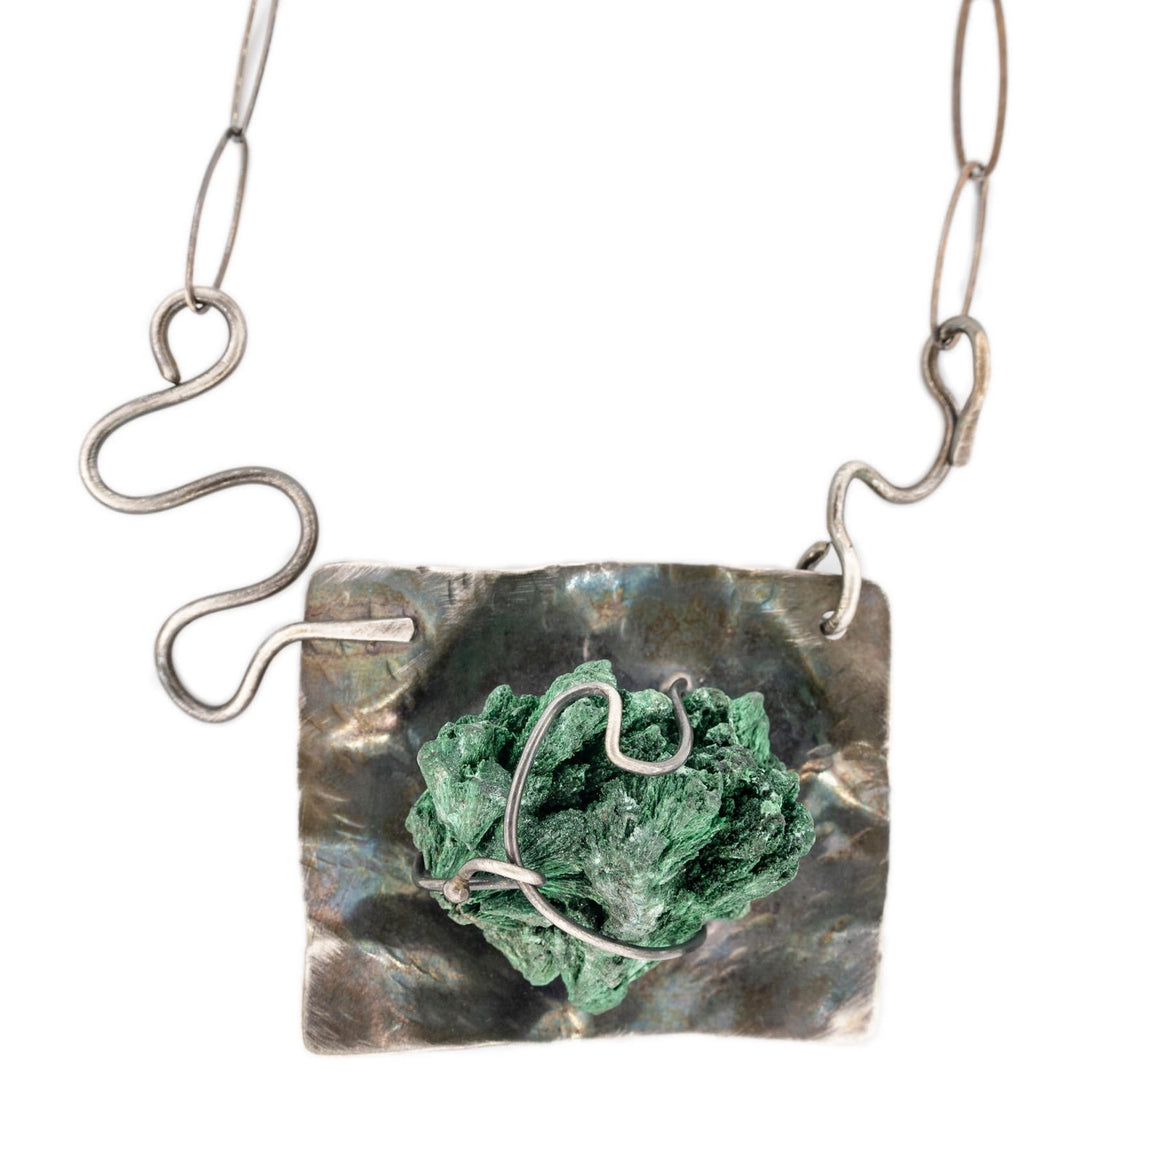 Malachite Specimen Necklace in Oxidized Silver by Original Sin Jewelry